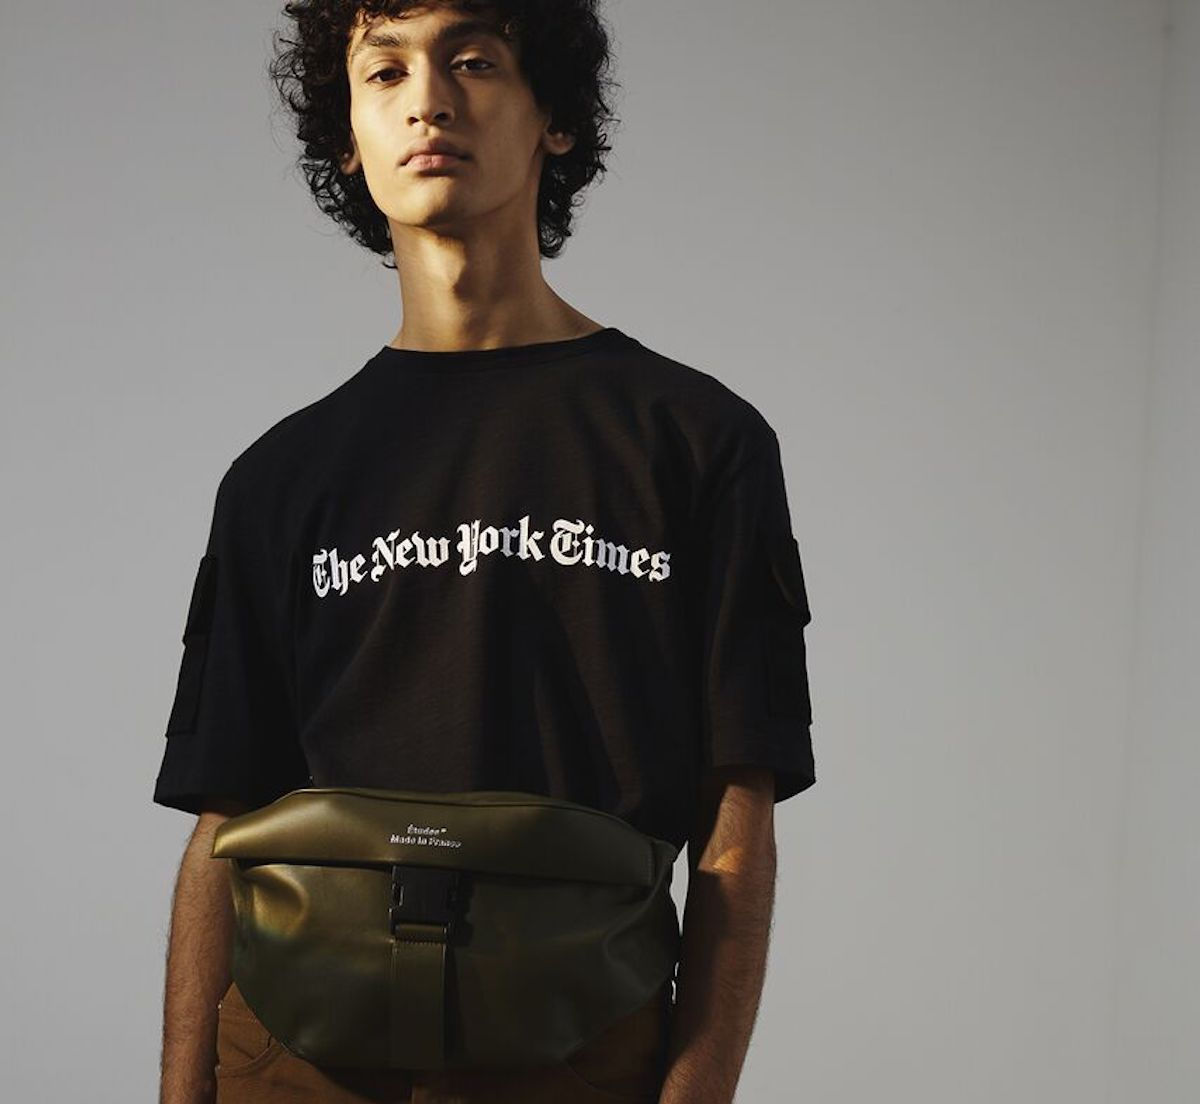 Études & The New York Times Reveal New Collaborative Collection